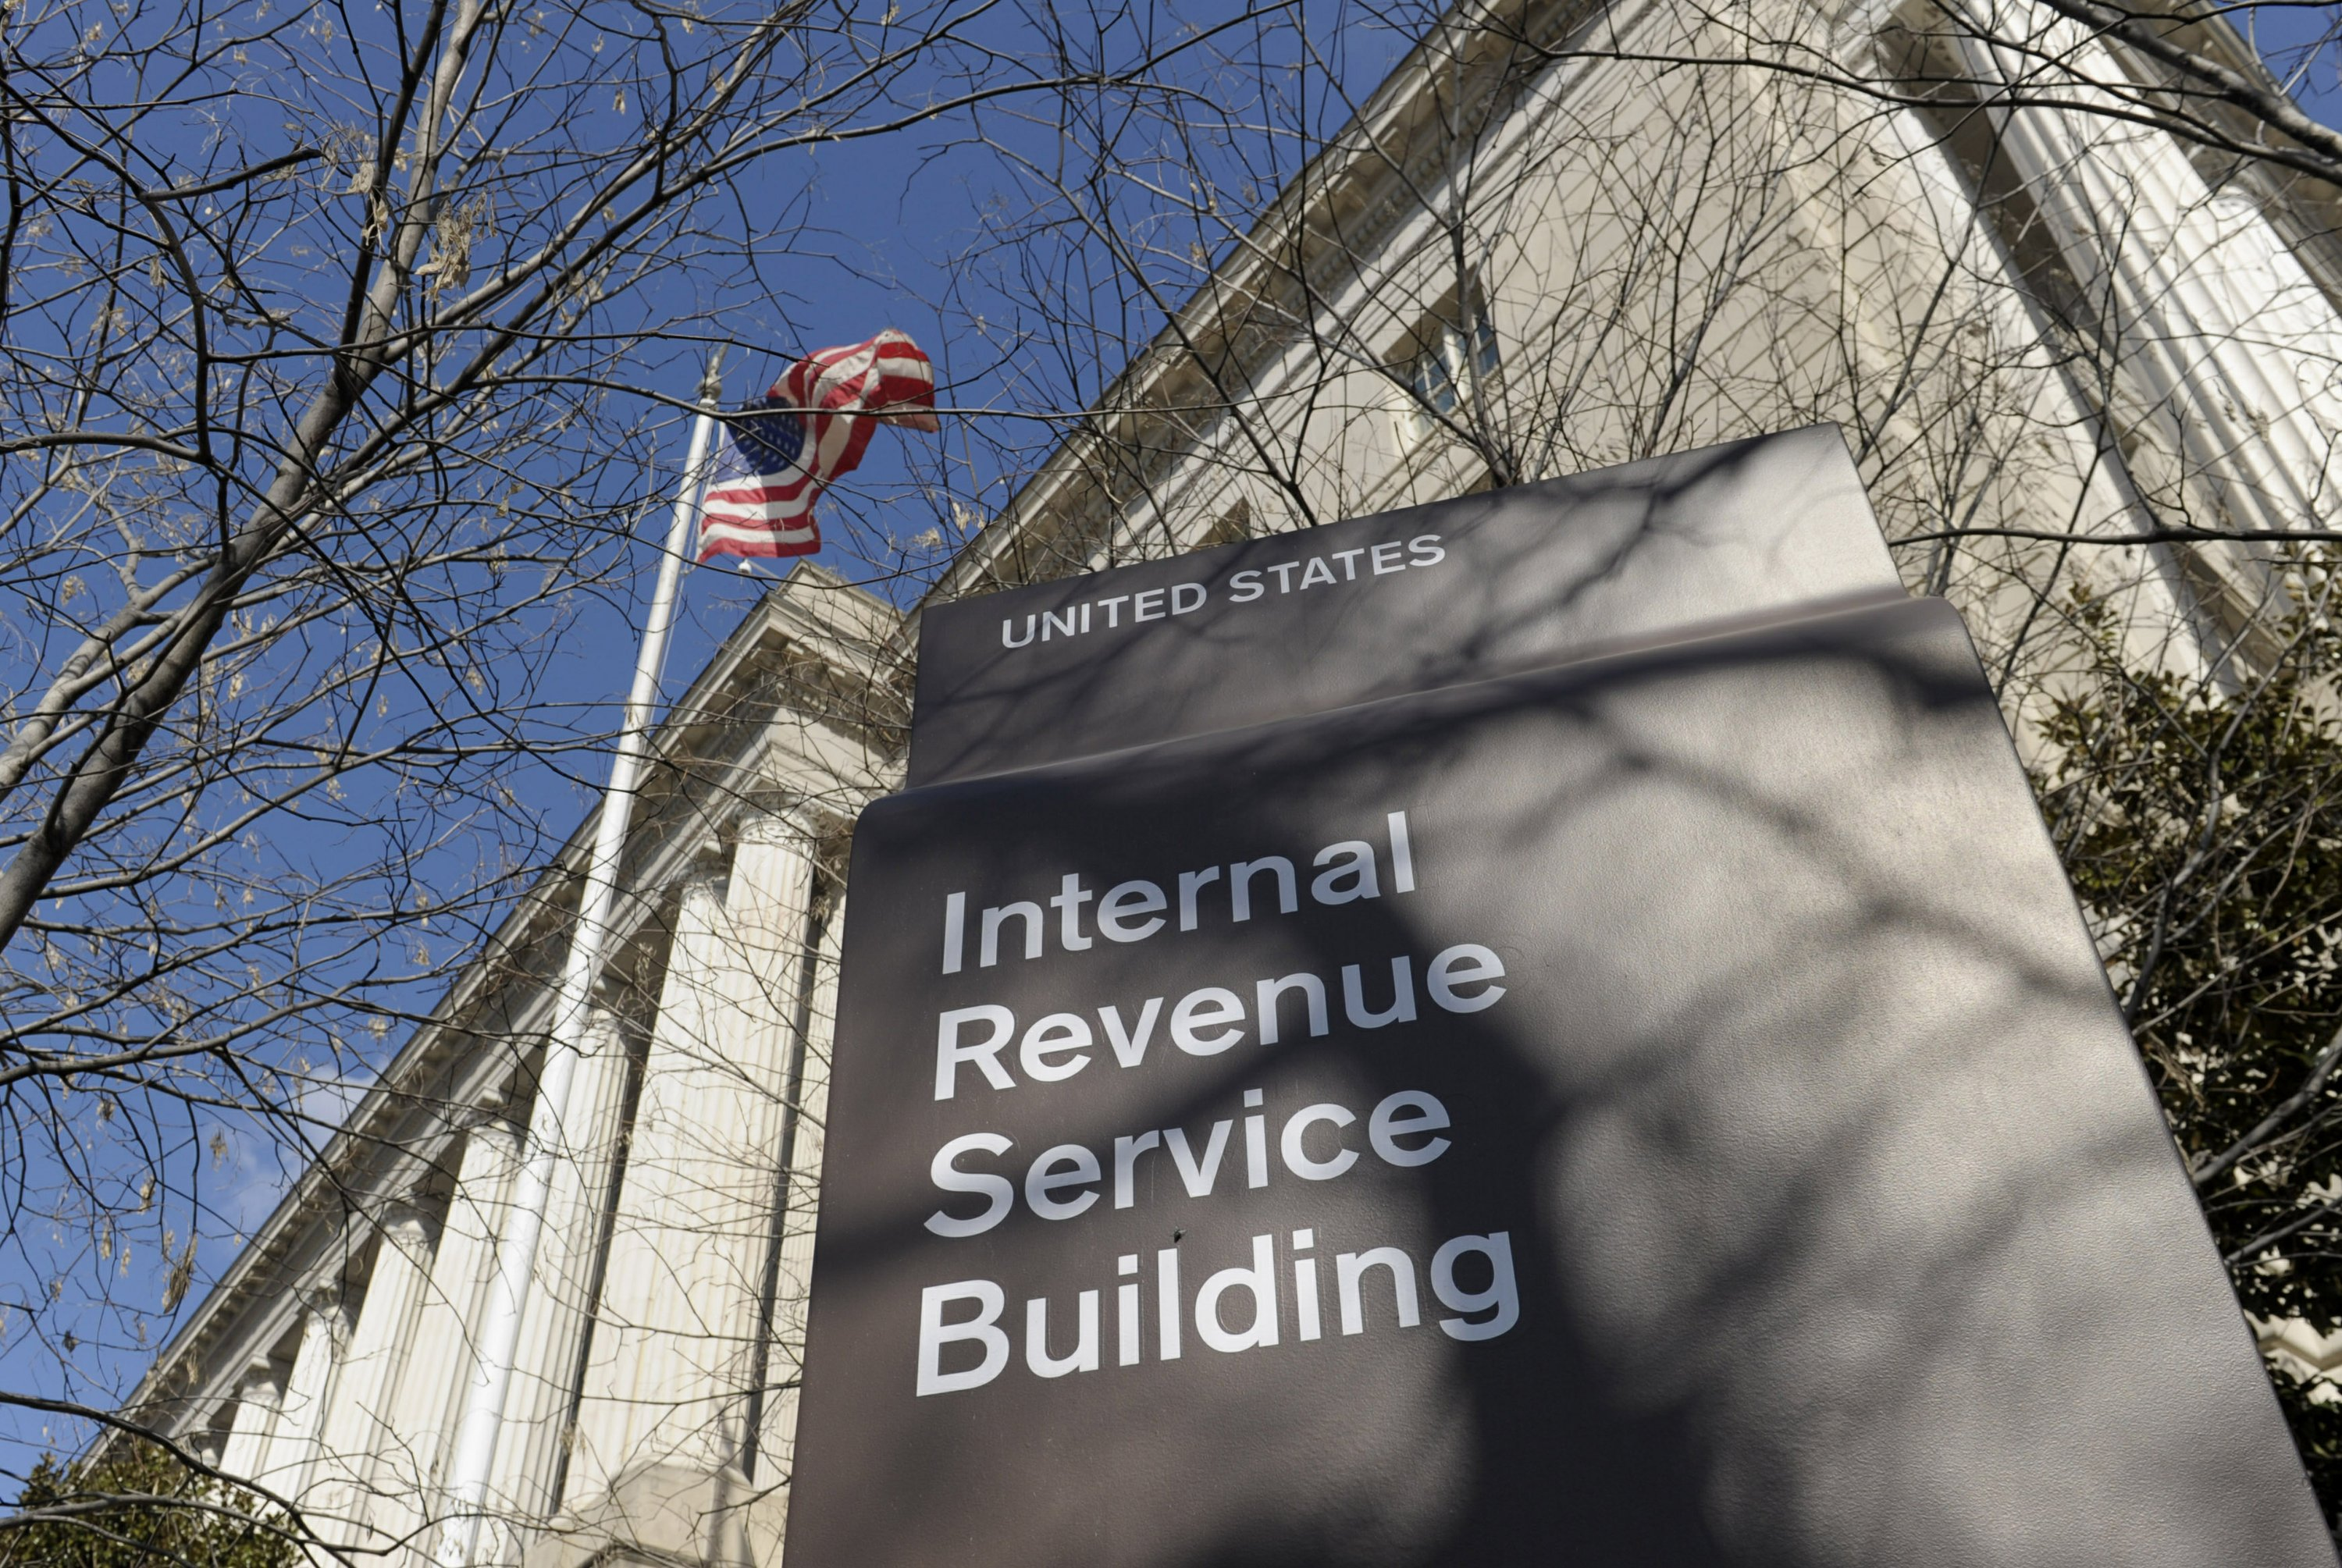 Current Status: The IRS is recalling 46,000 workers to handle tax returns